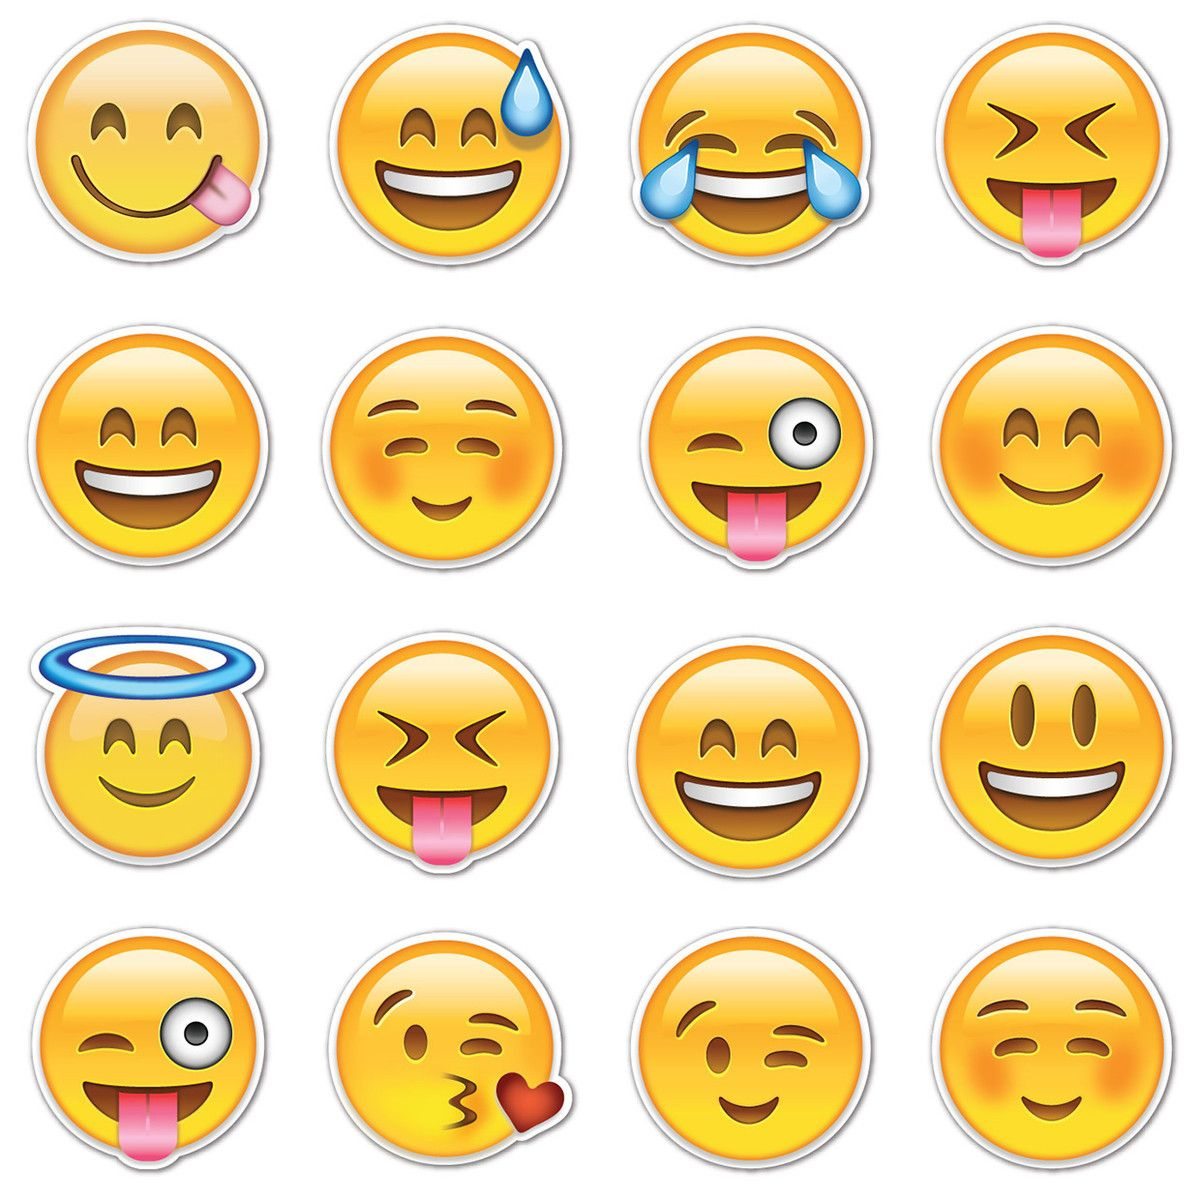 Latest Tech Updates Gboard Emojis Facebook Gifs And More Emoji Emoticon Emoji Stickers